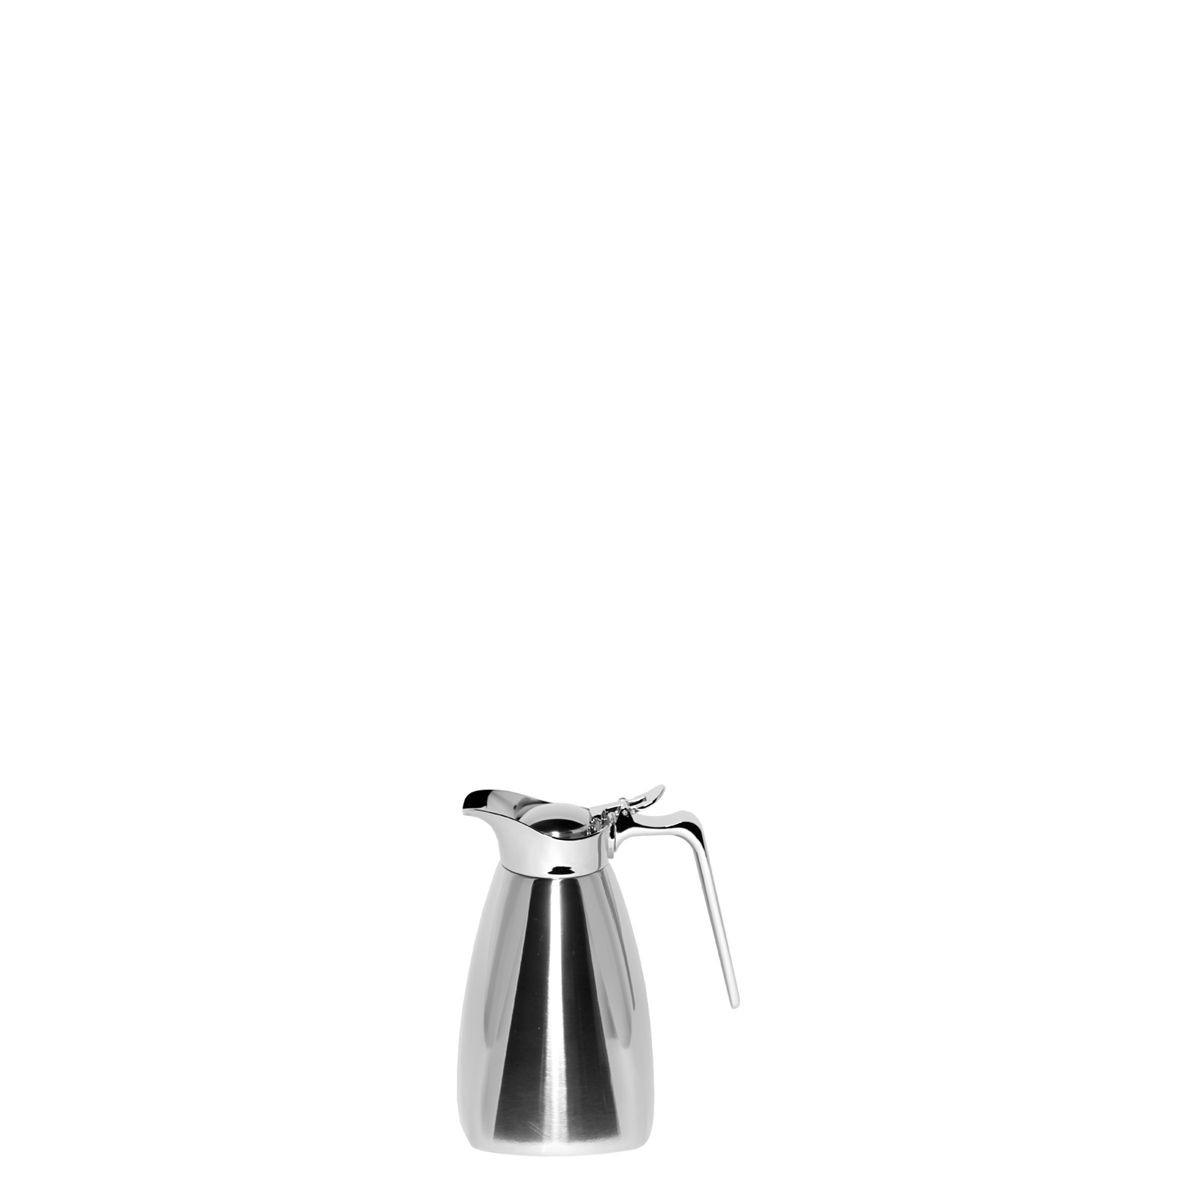 Service Ideas SVSQ04PS Polished Steel Square Carafe, 0.4 Liter